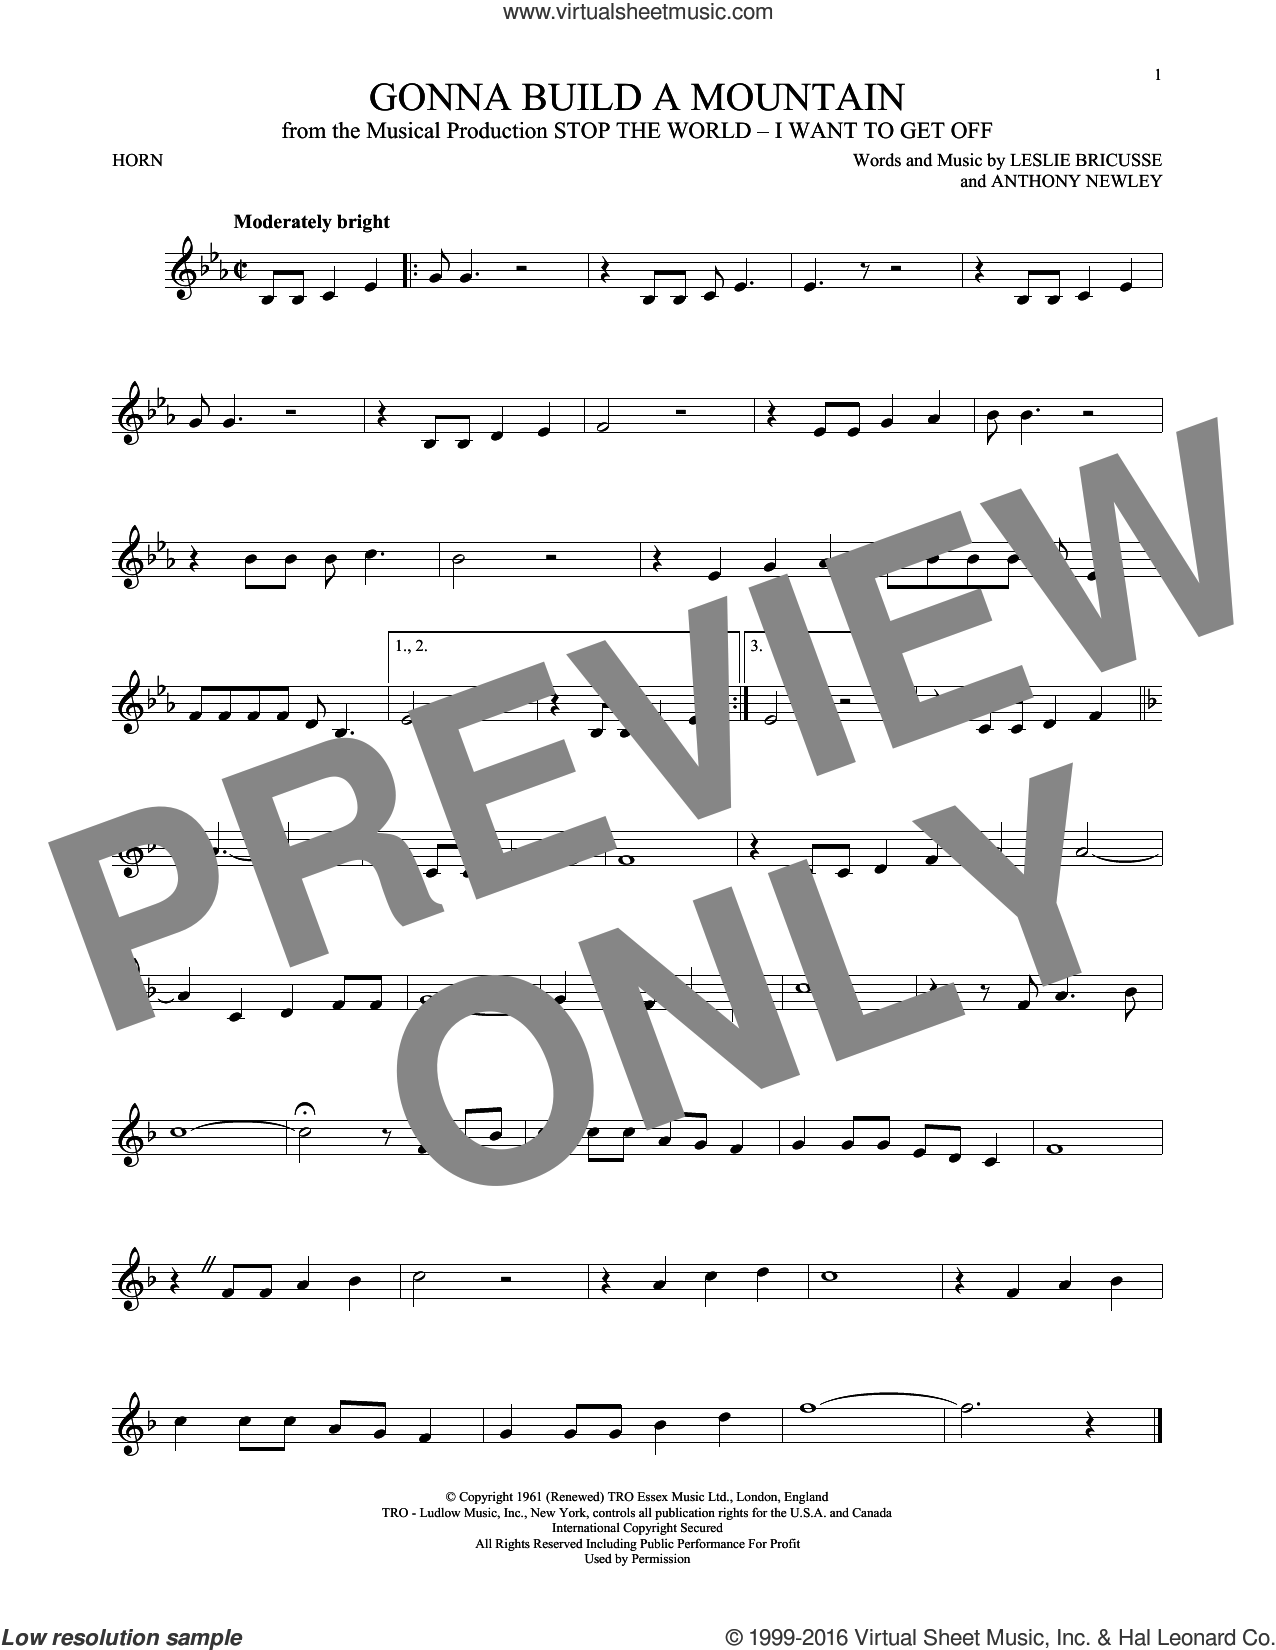 Gonna Build A Mountain sheet music for horn solo by Leslie Bricusse and Anthony Newley, intermediate